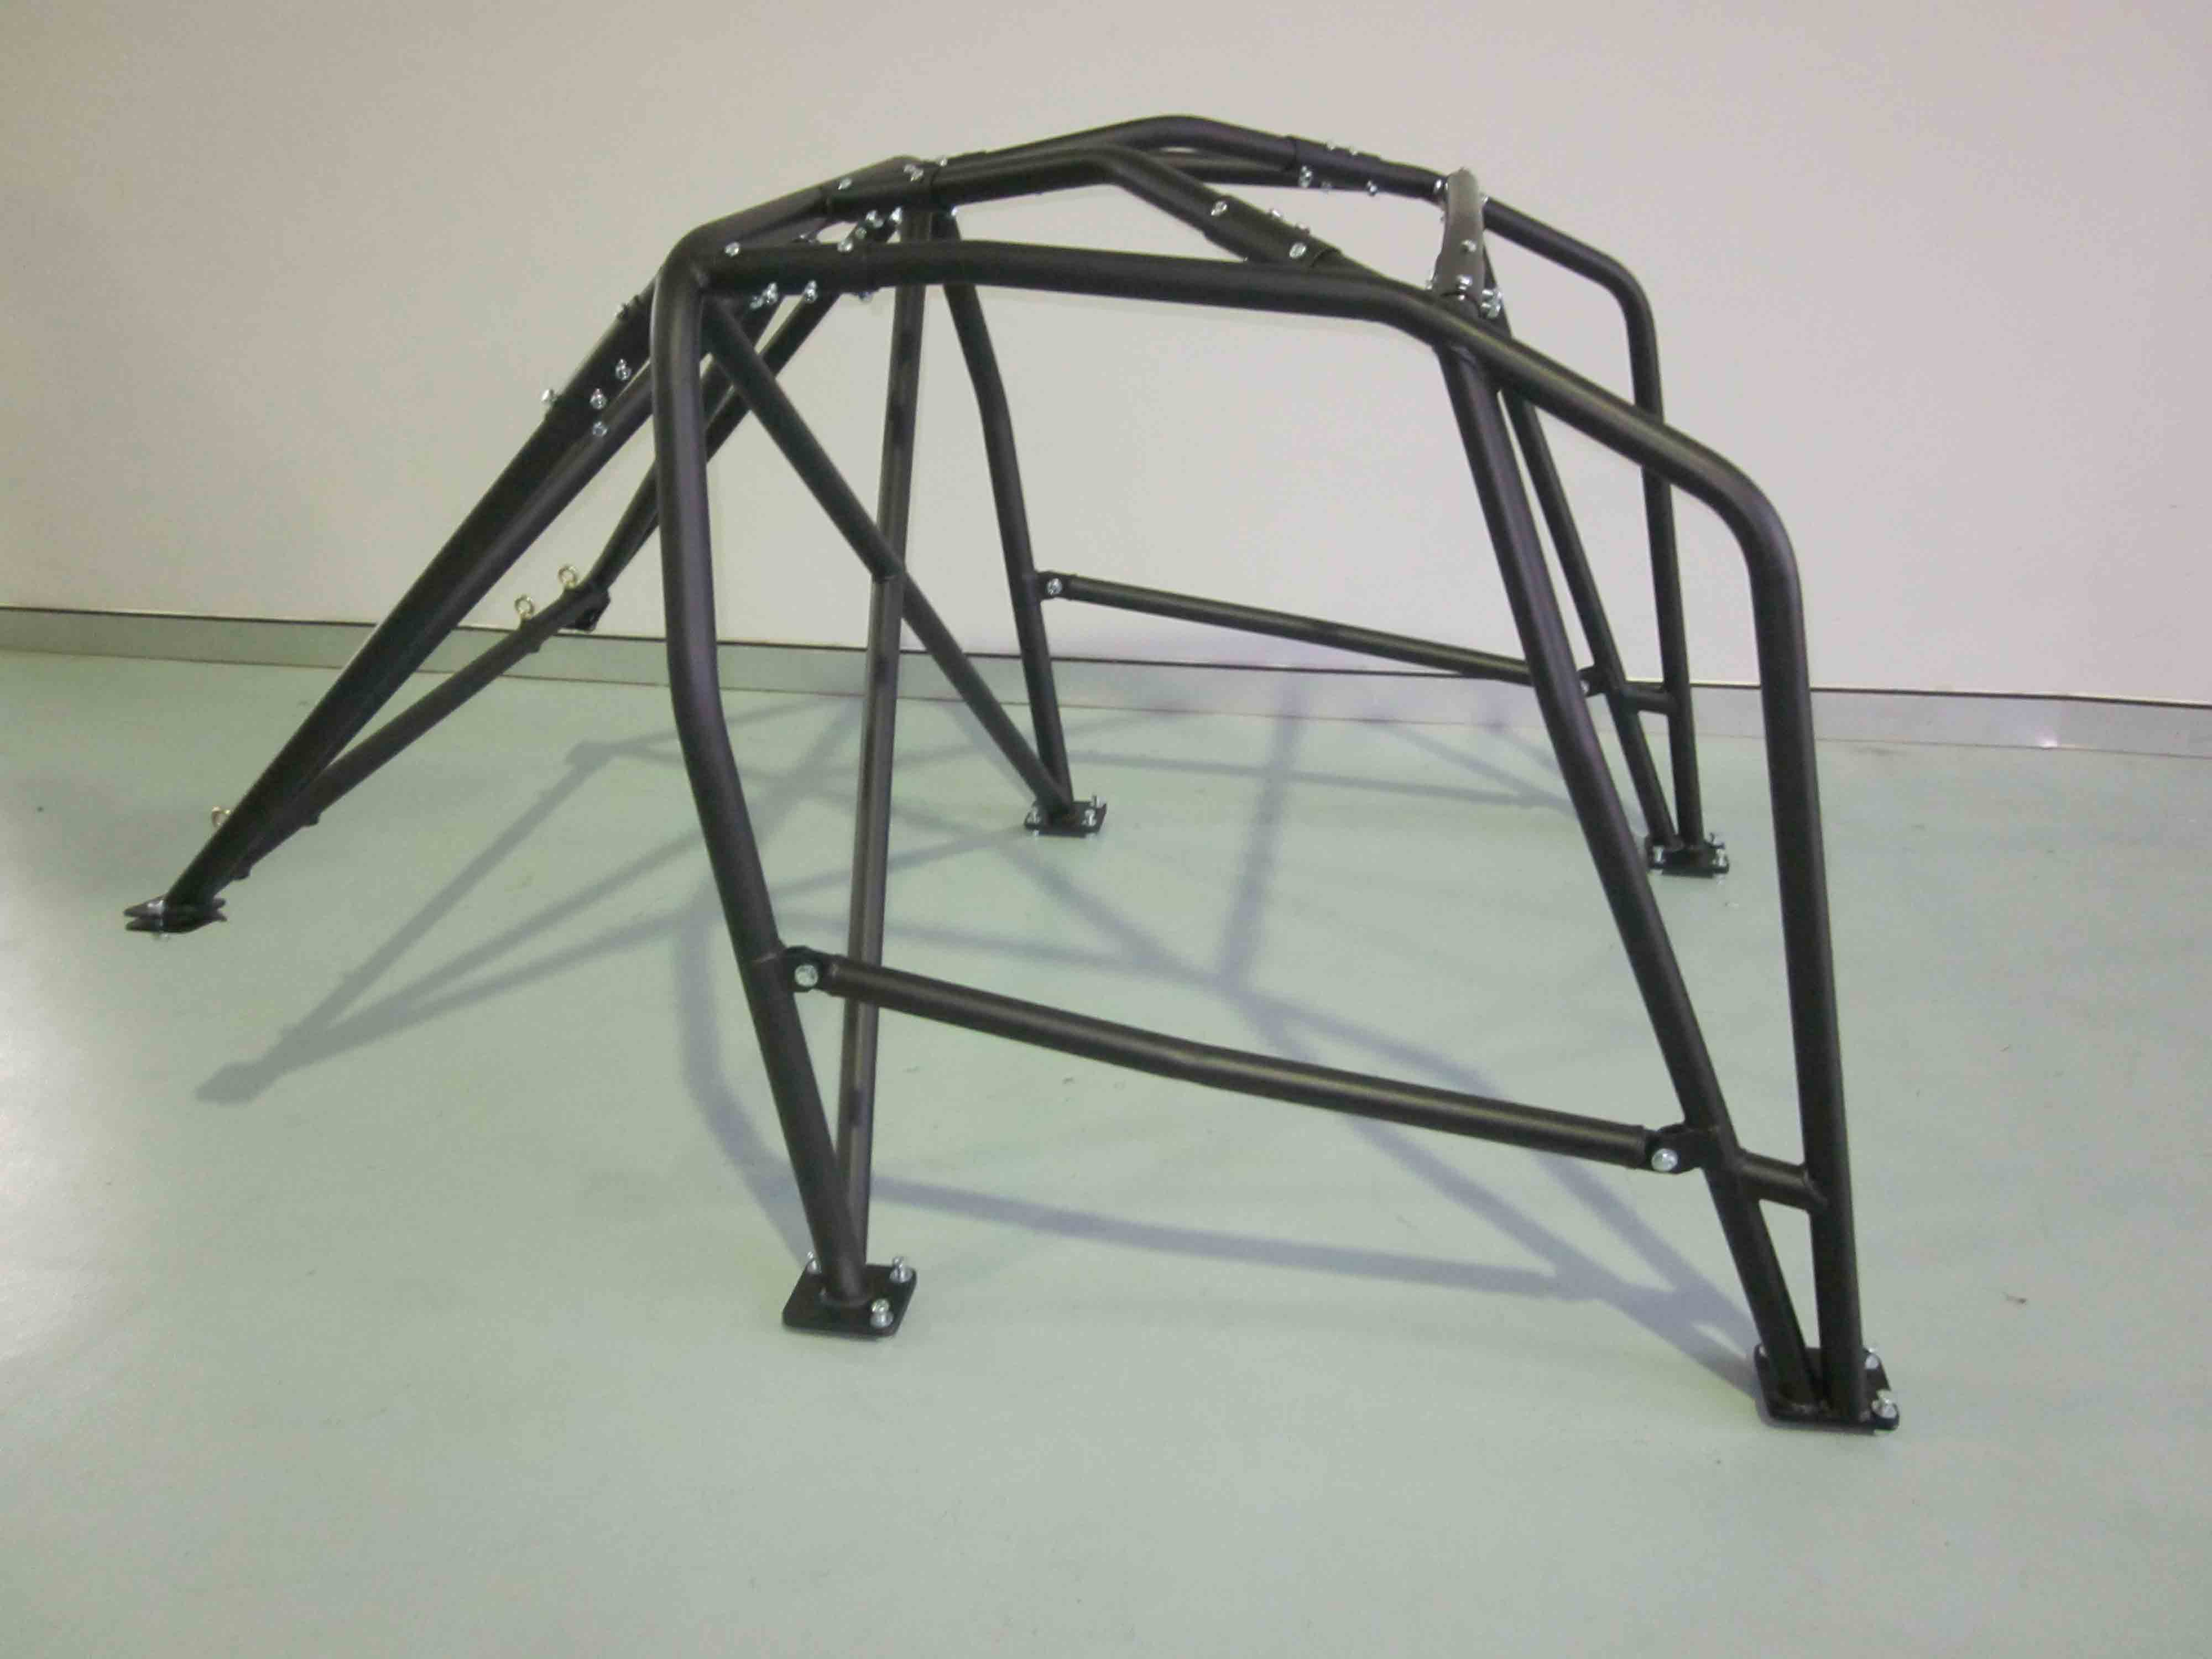 gi-honda-integra-dc2-2016-cams-national-level-roll-cage-floor-pic-side